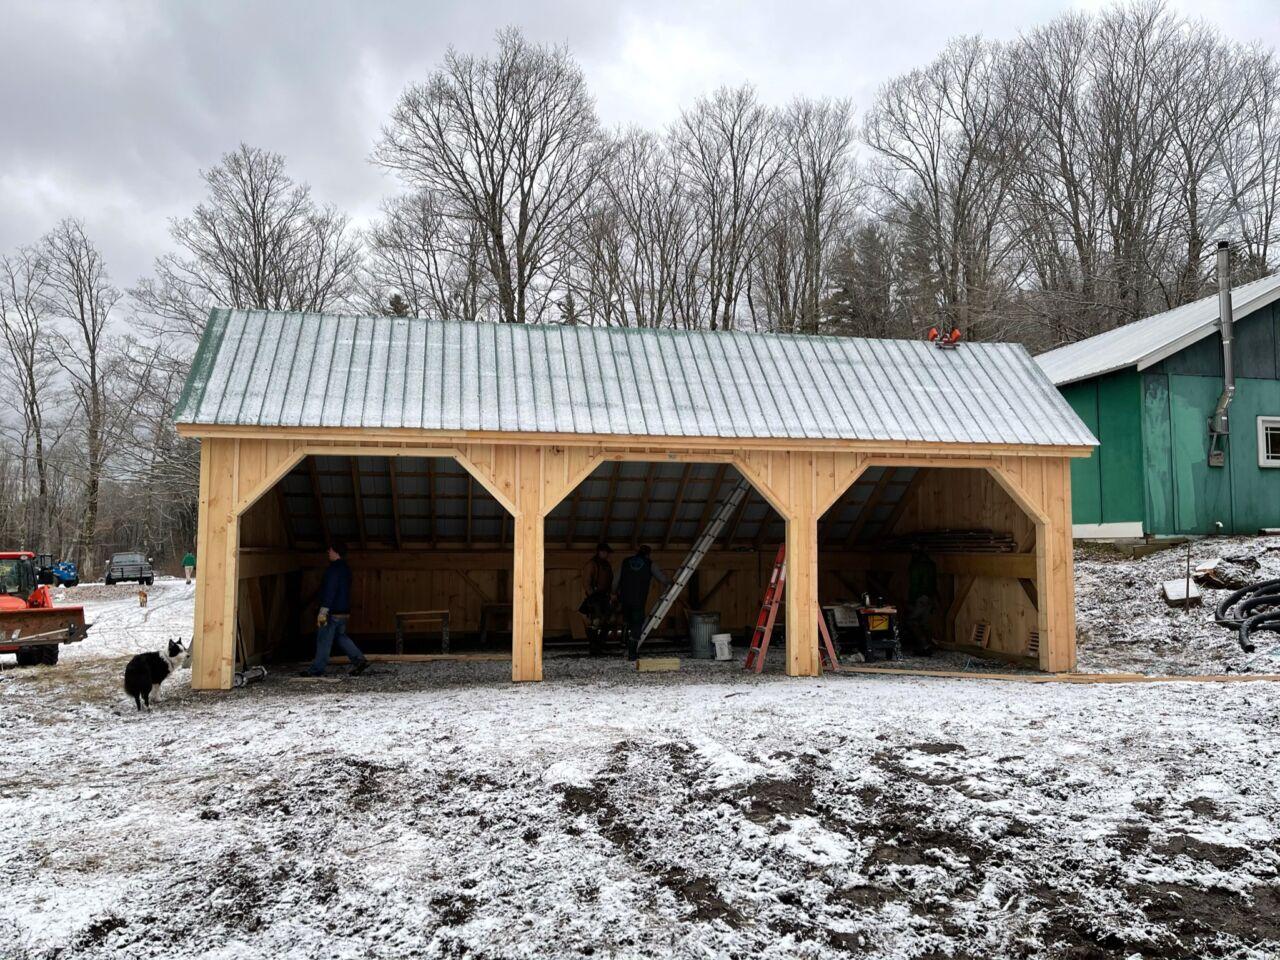 Skier Shed for Covid-19 Distancing